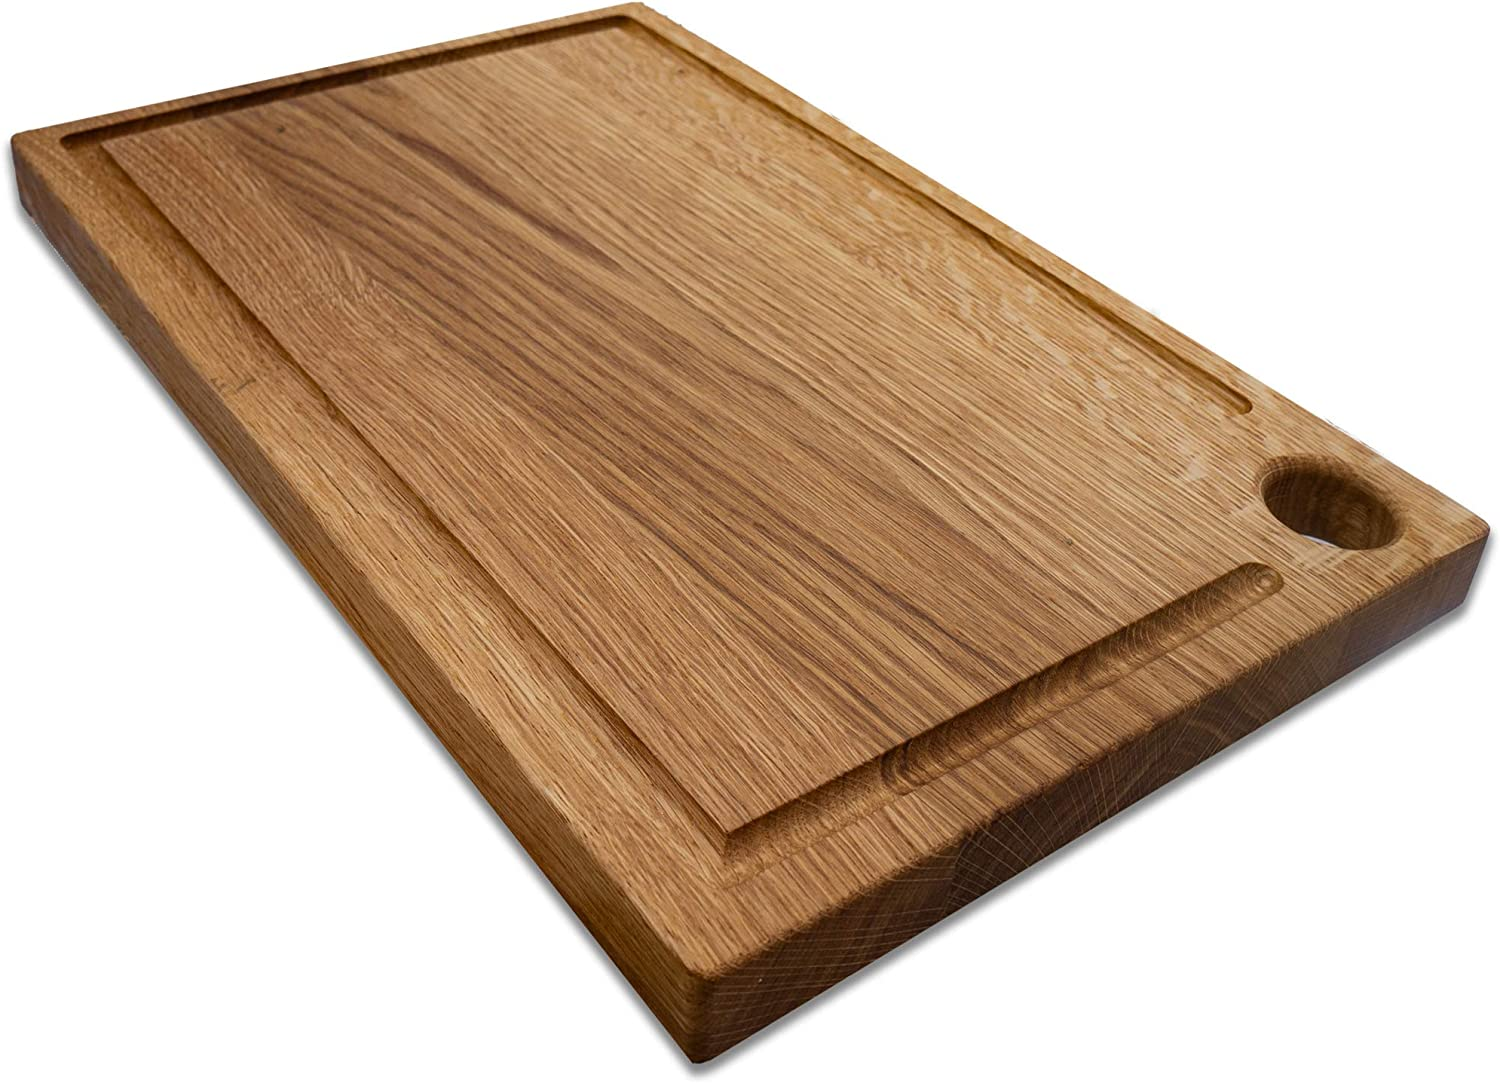 Very popular Eco Home Wood cutting boards for Max 89% OFF Wooden kitchen block Cu butcher